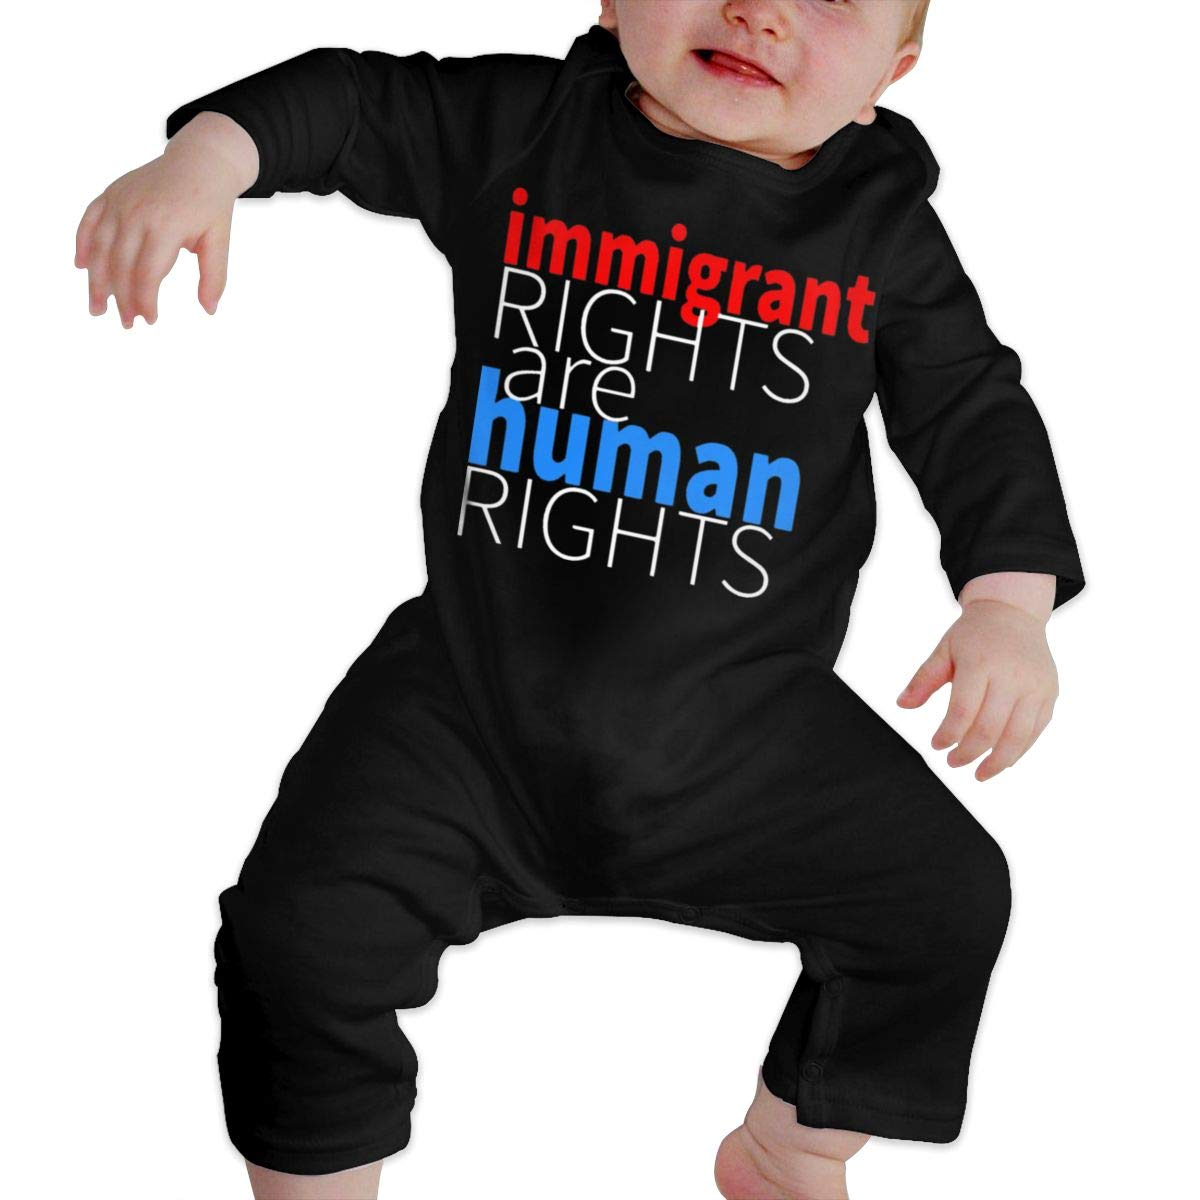 Immigrant Rights are Human Rights Newborn Baby Boy Girl Romper Jumpsuit Long Sleeve Bodysuit Overalls Outfits Clothes